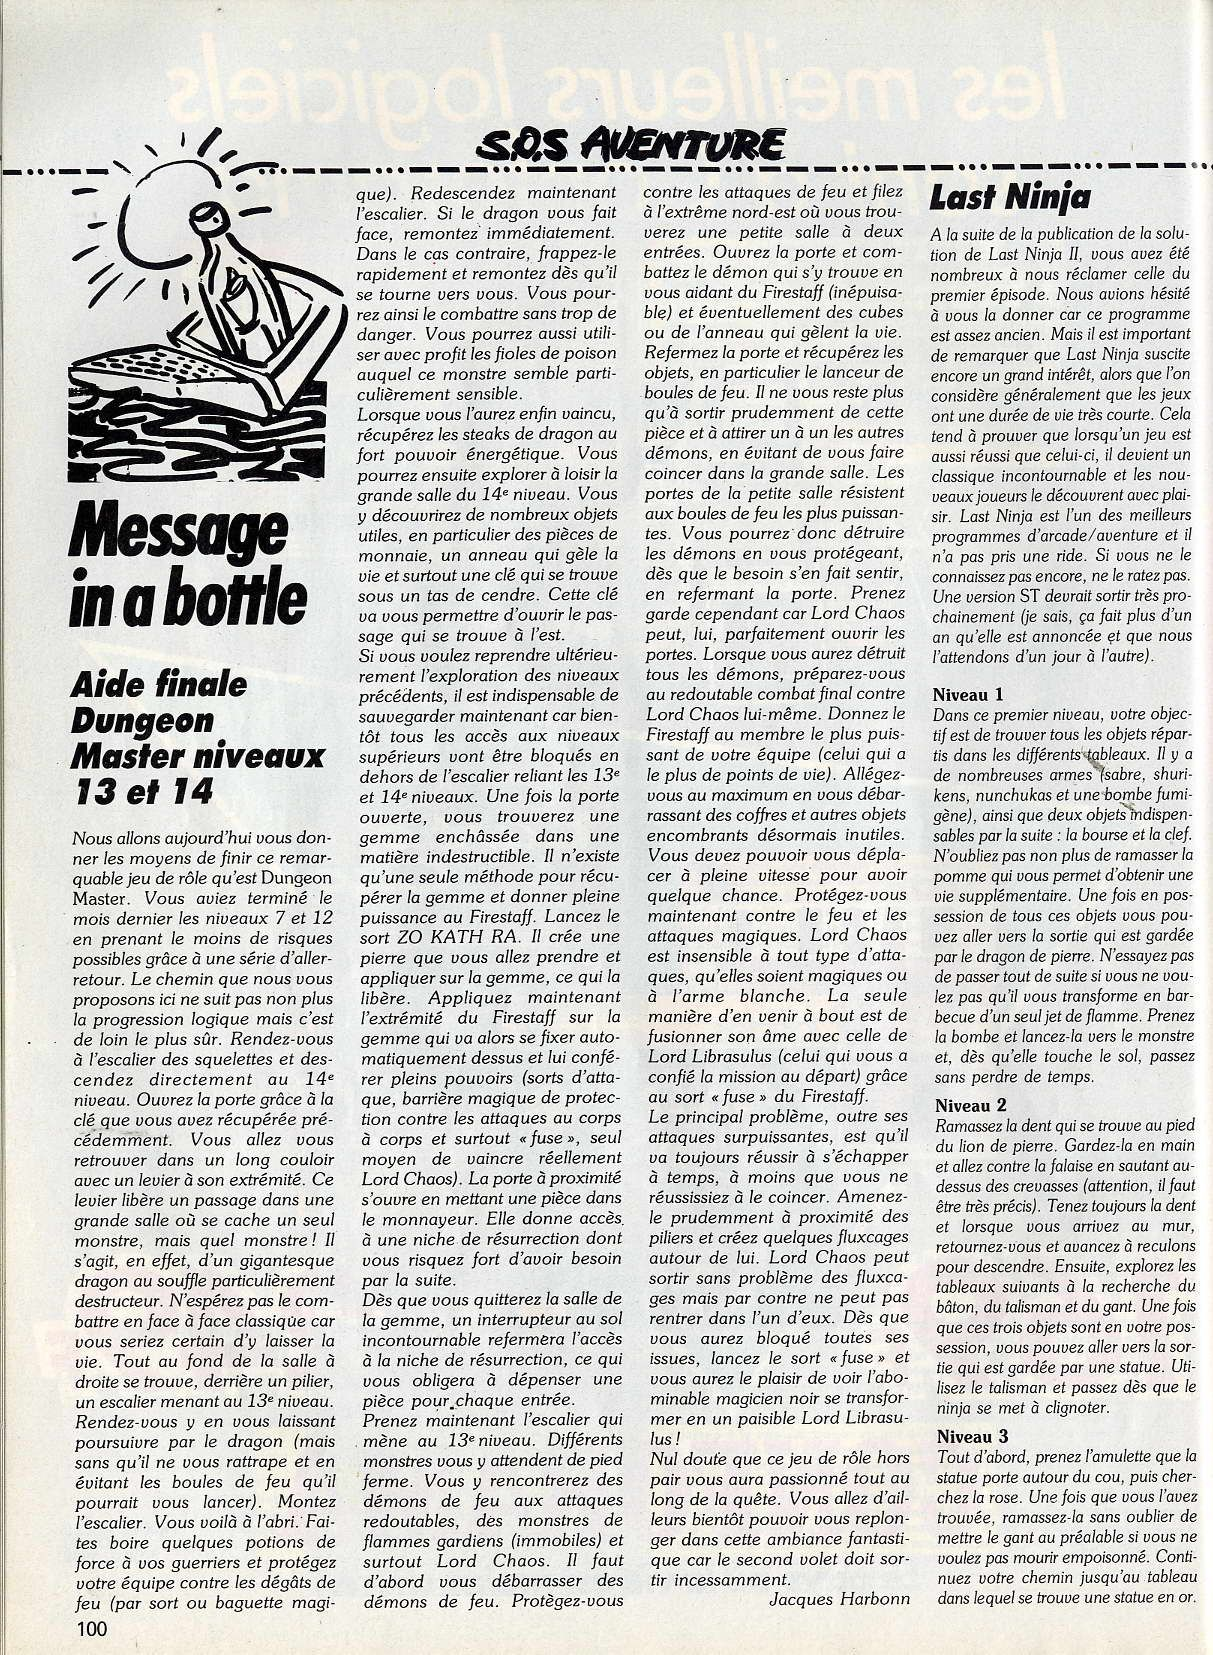 Dungeon Master and Chaos Strikes Back Hints published in French magazine 'Tilt', Issue#67, June 1989, Page 100